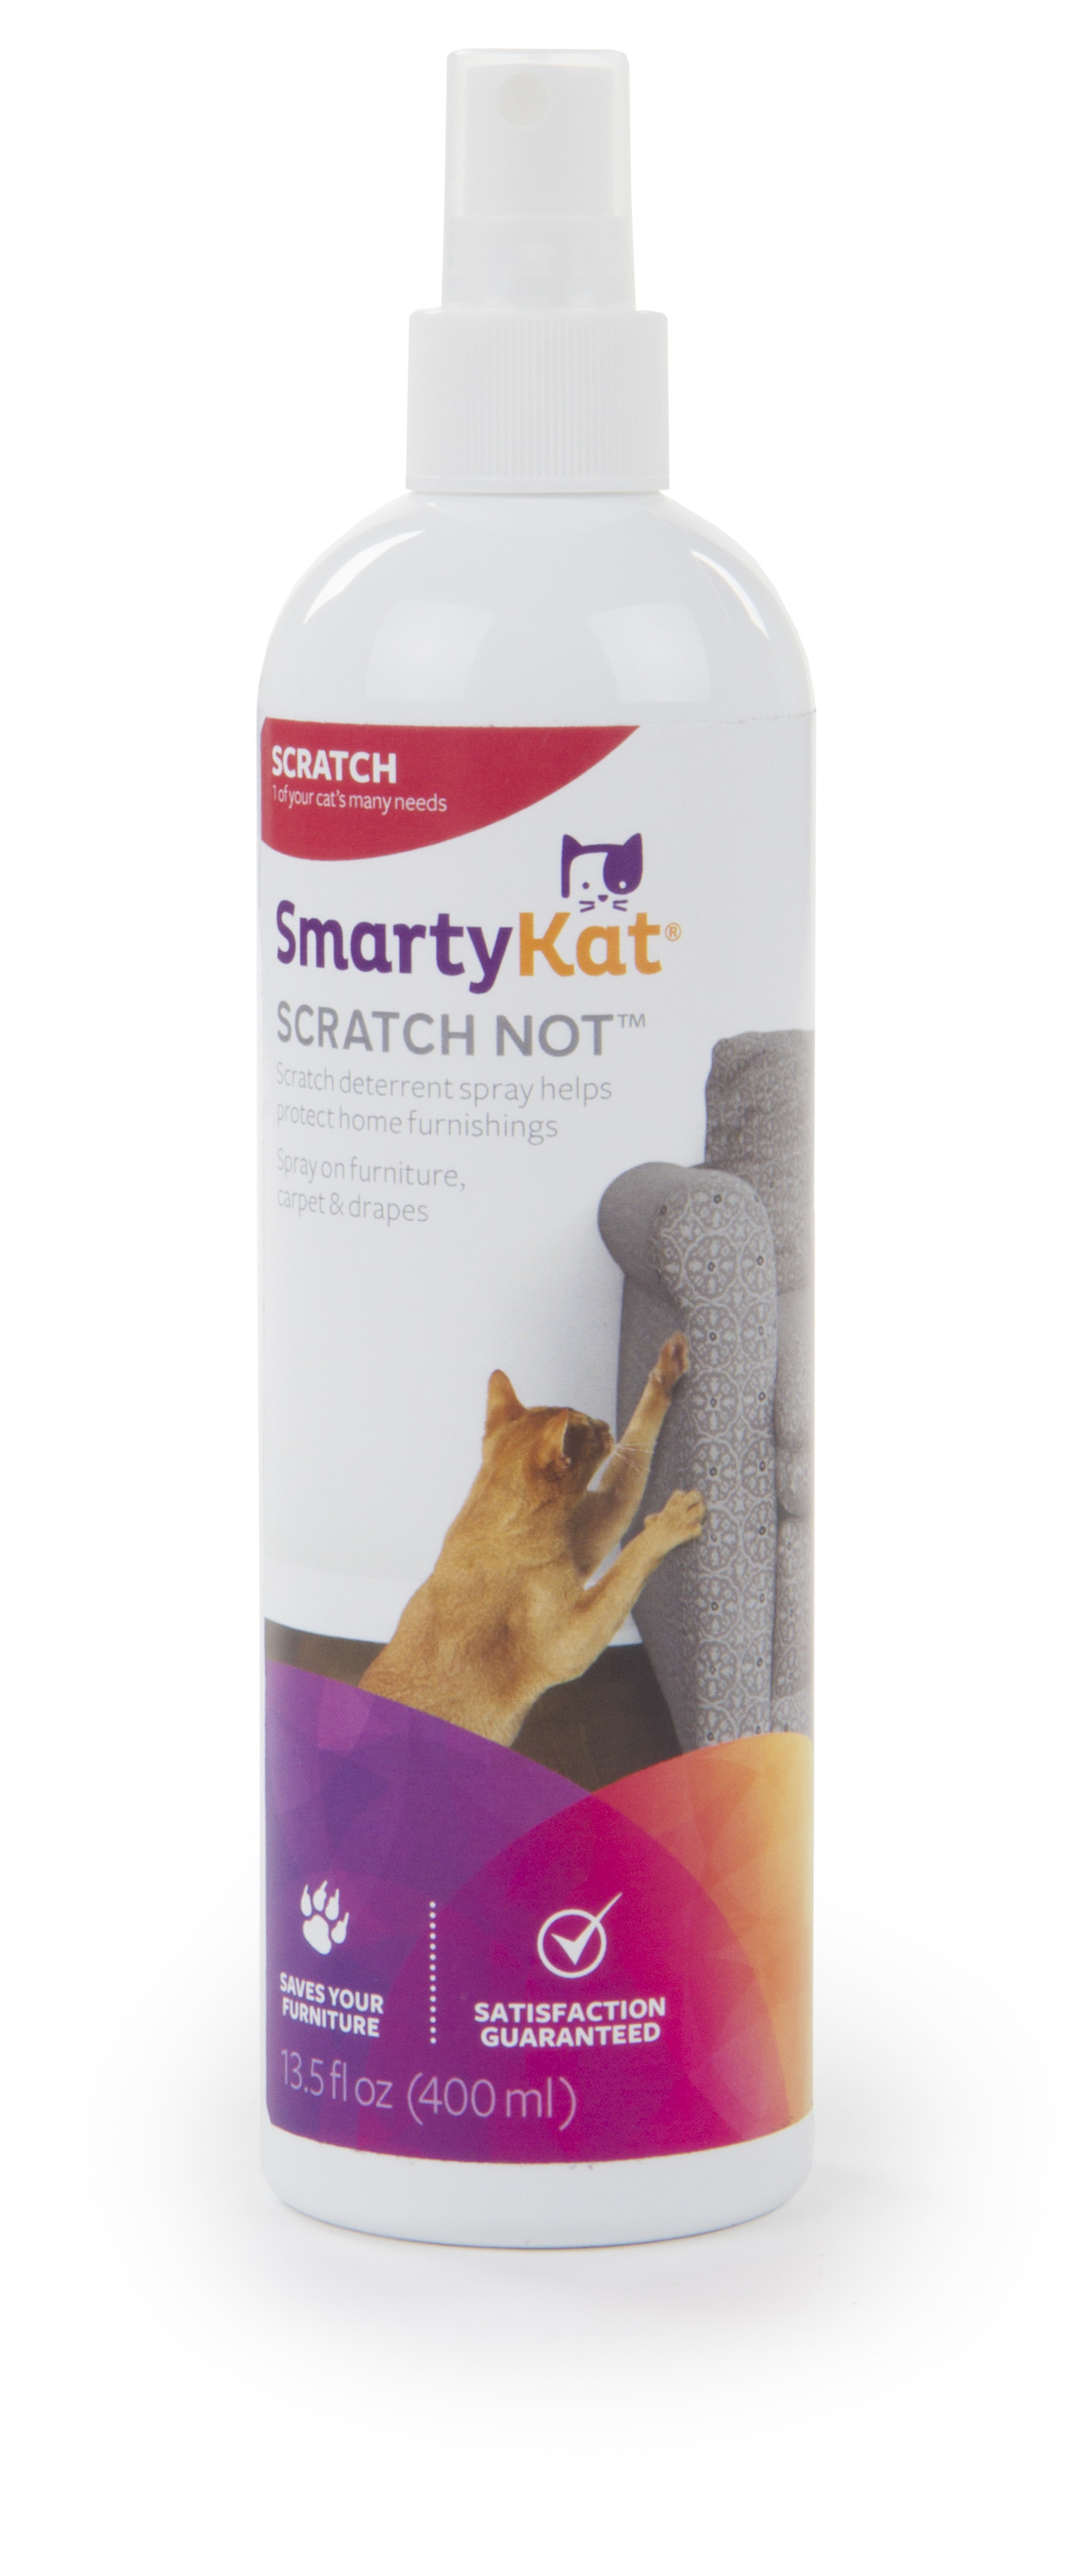 Furniture Spray To Keep Cats From Scratching - Furniture Walls